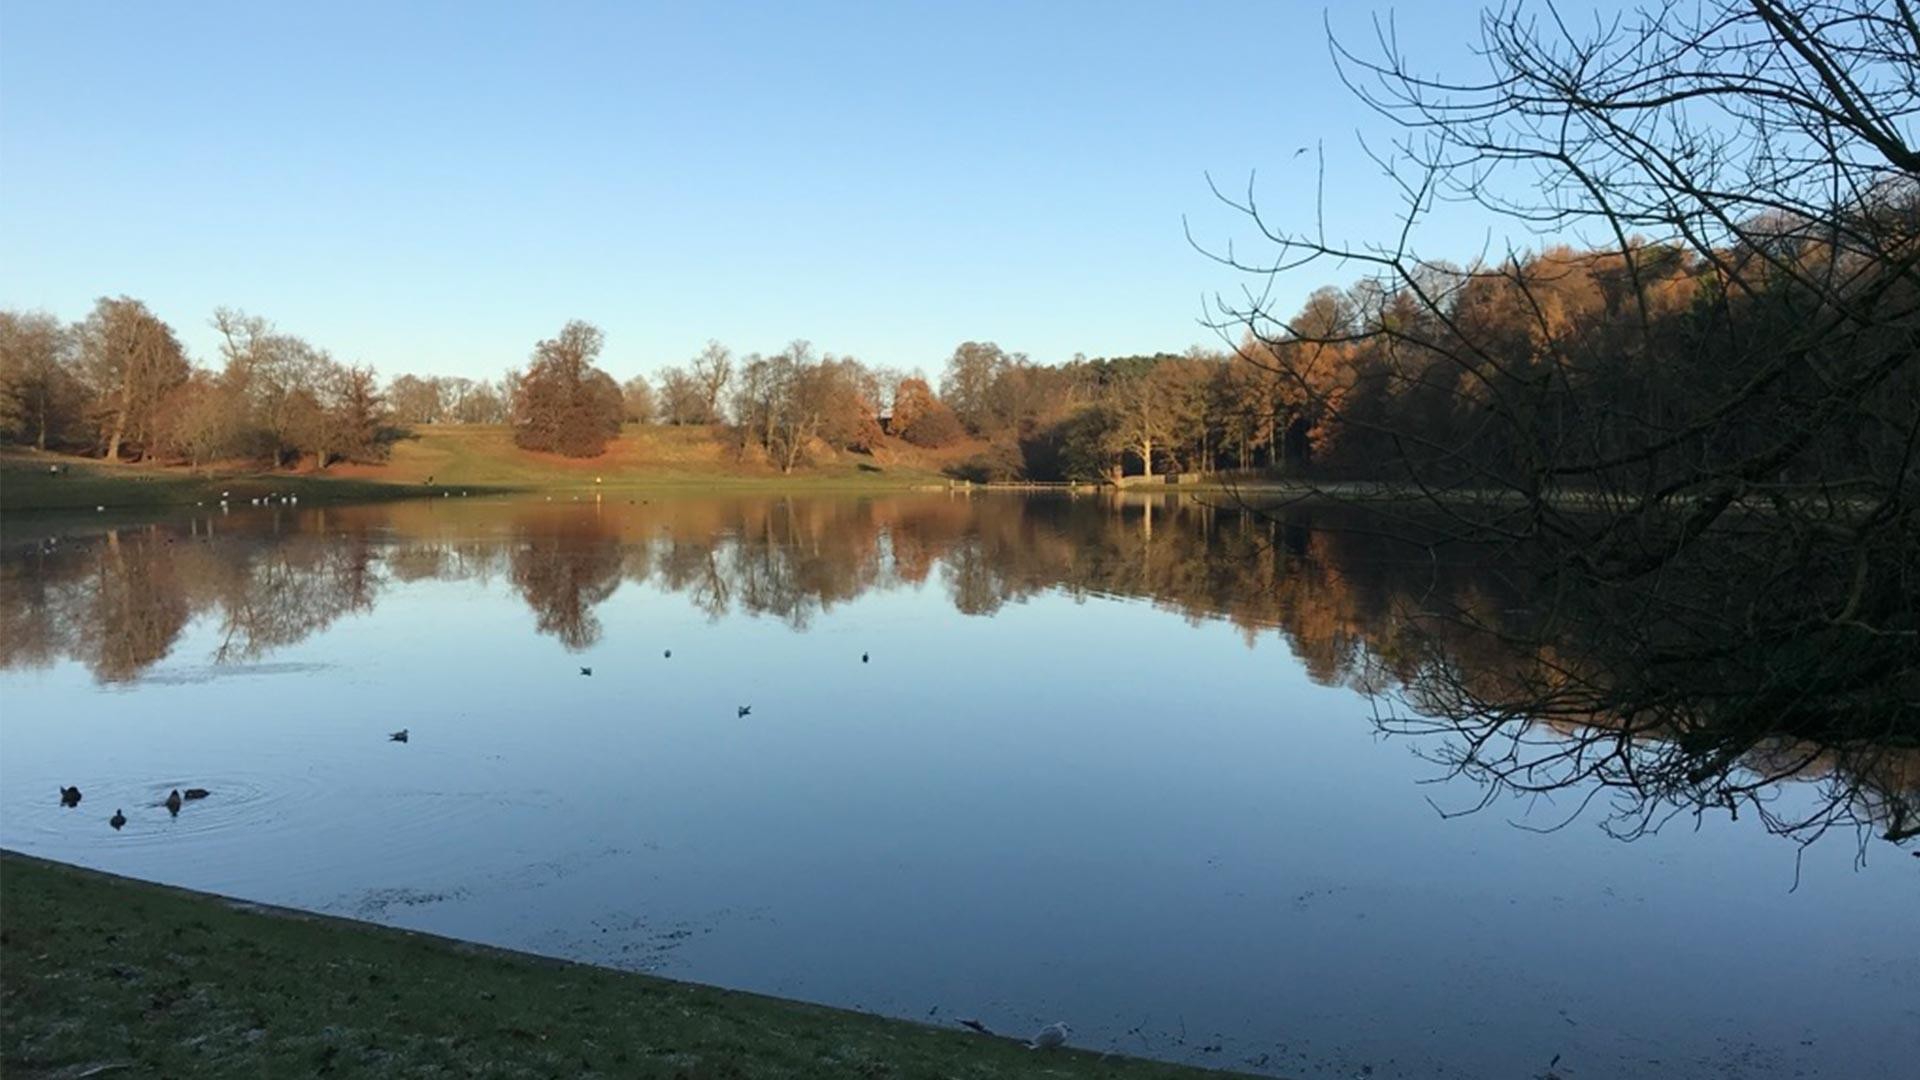 Reflections on the water at Studley Royal